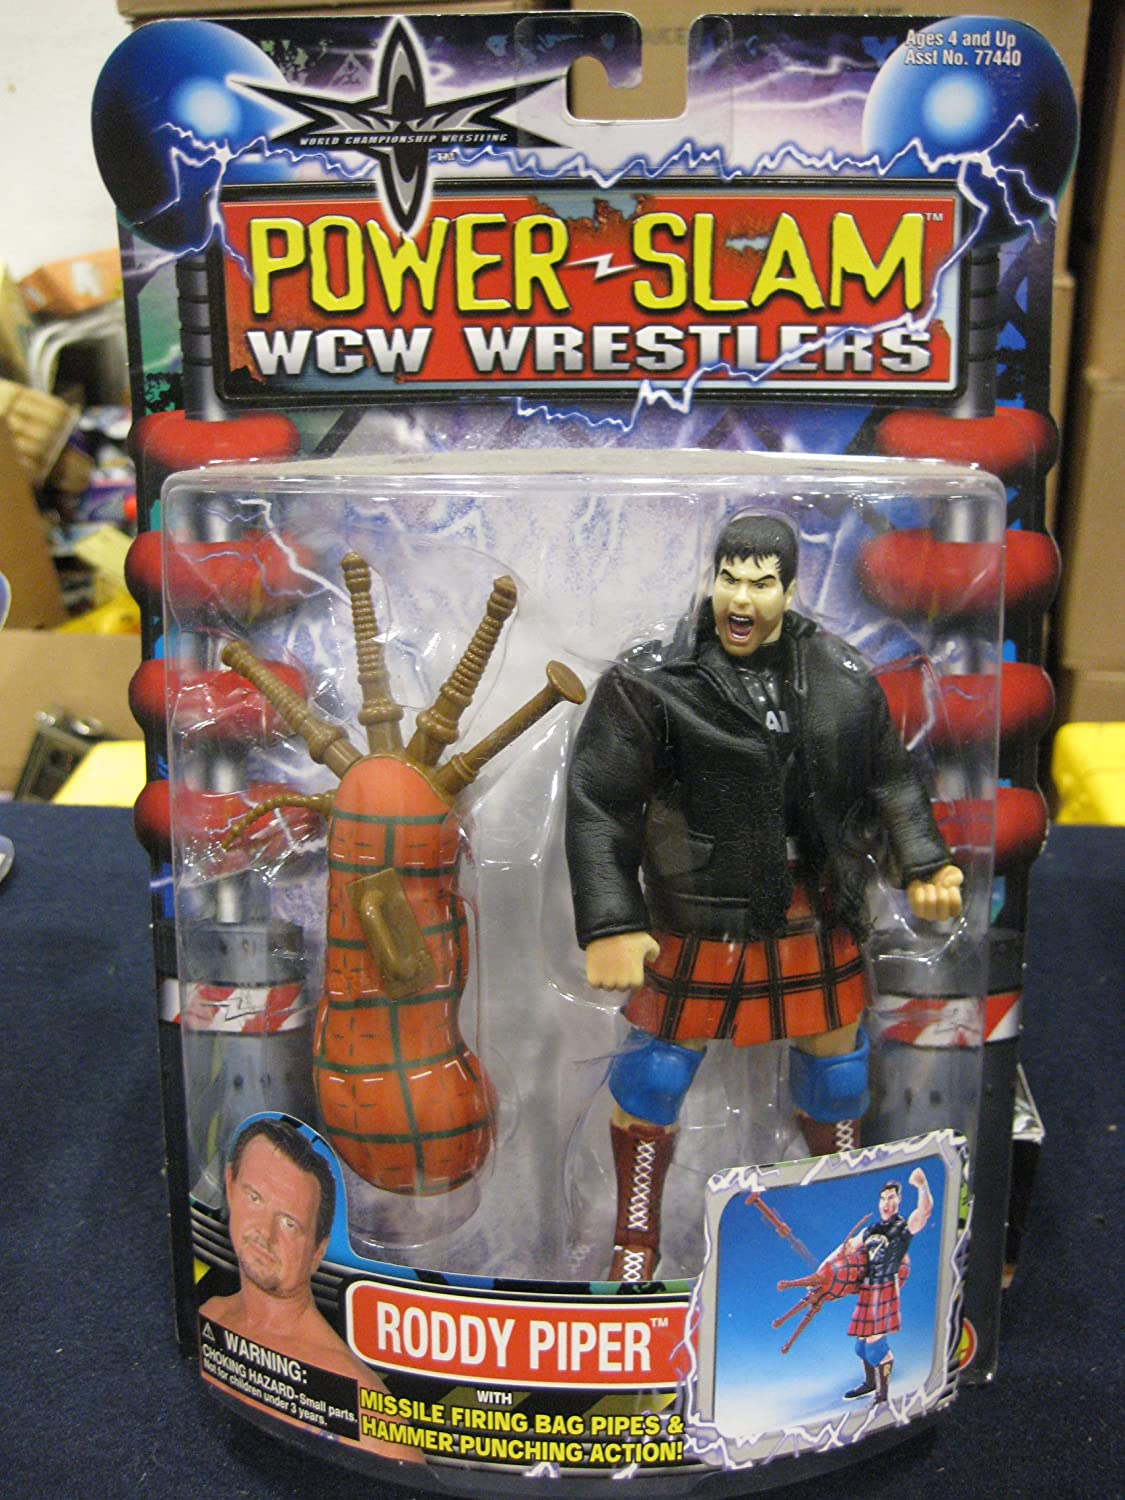 WCW Power Slam Wrestlers Roddy Piper distributed by Toy Biz 2000